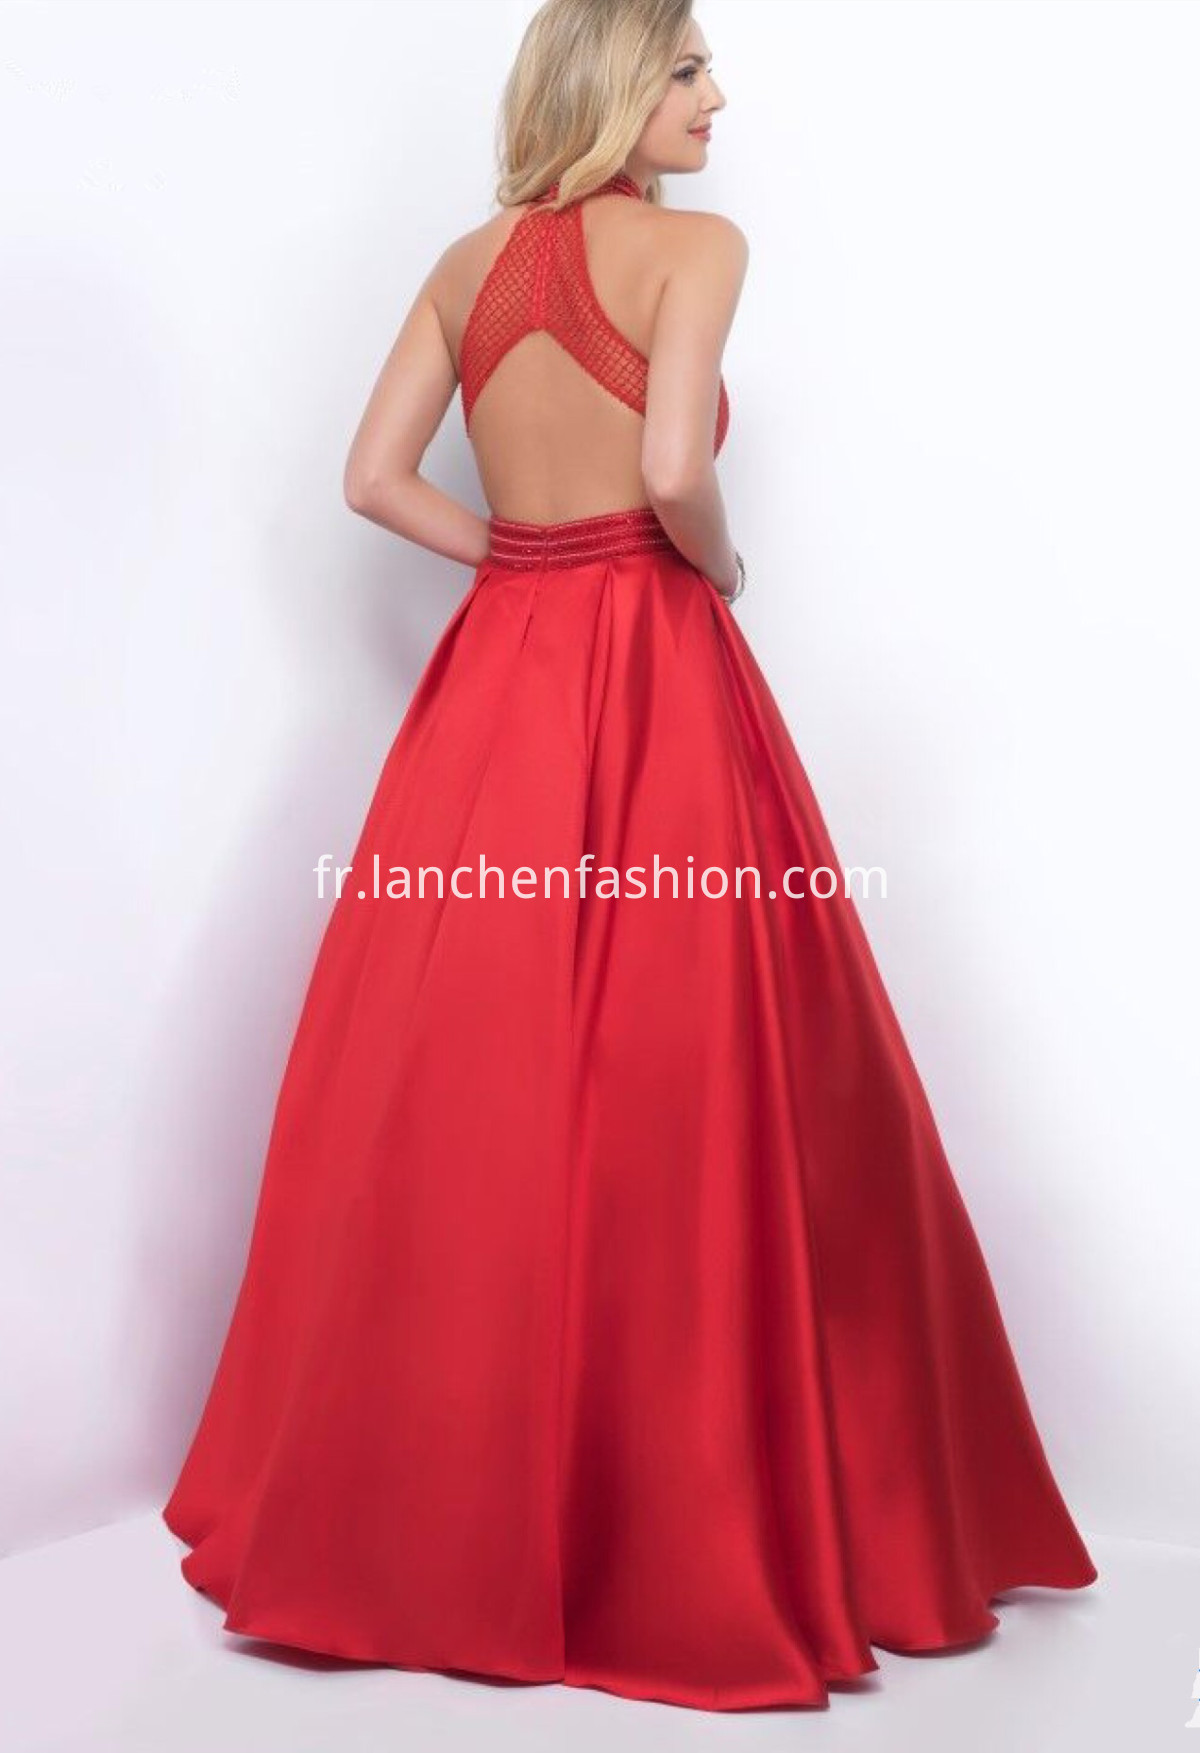 Red Backless Dress